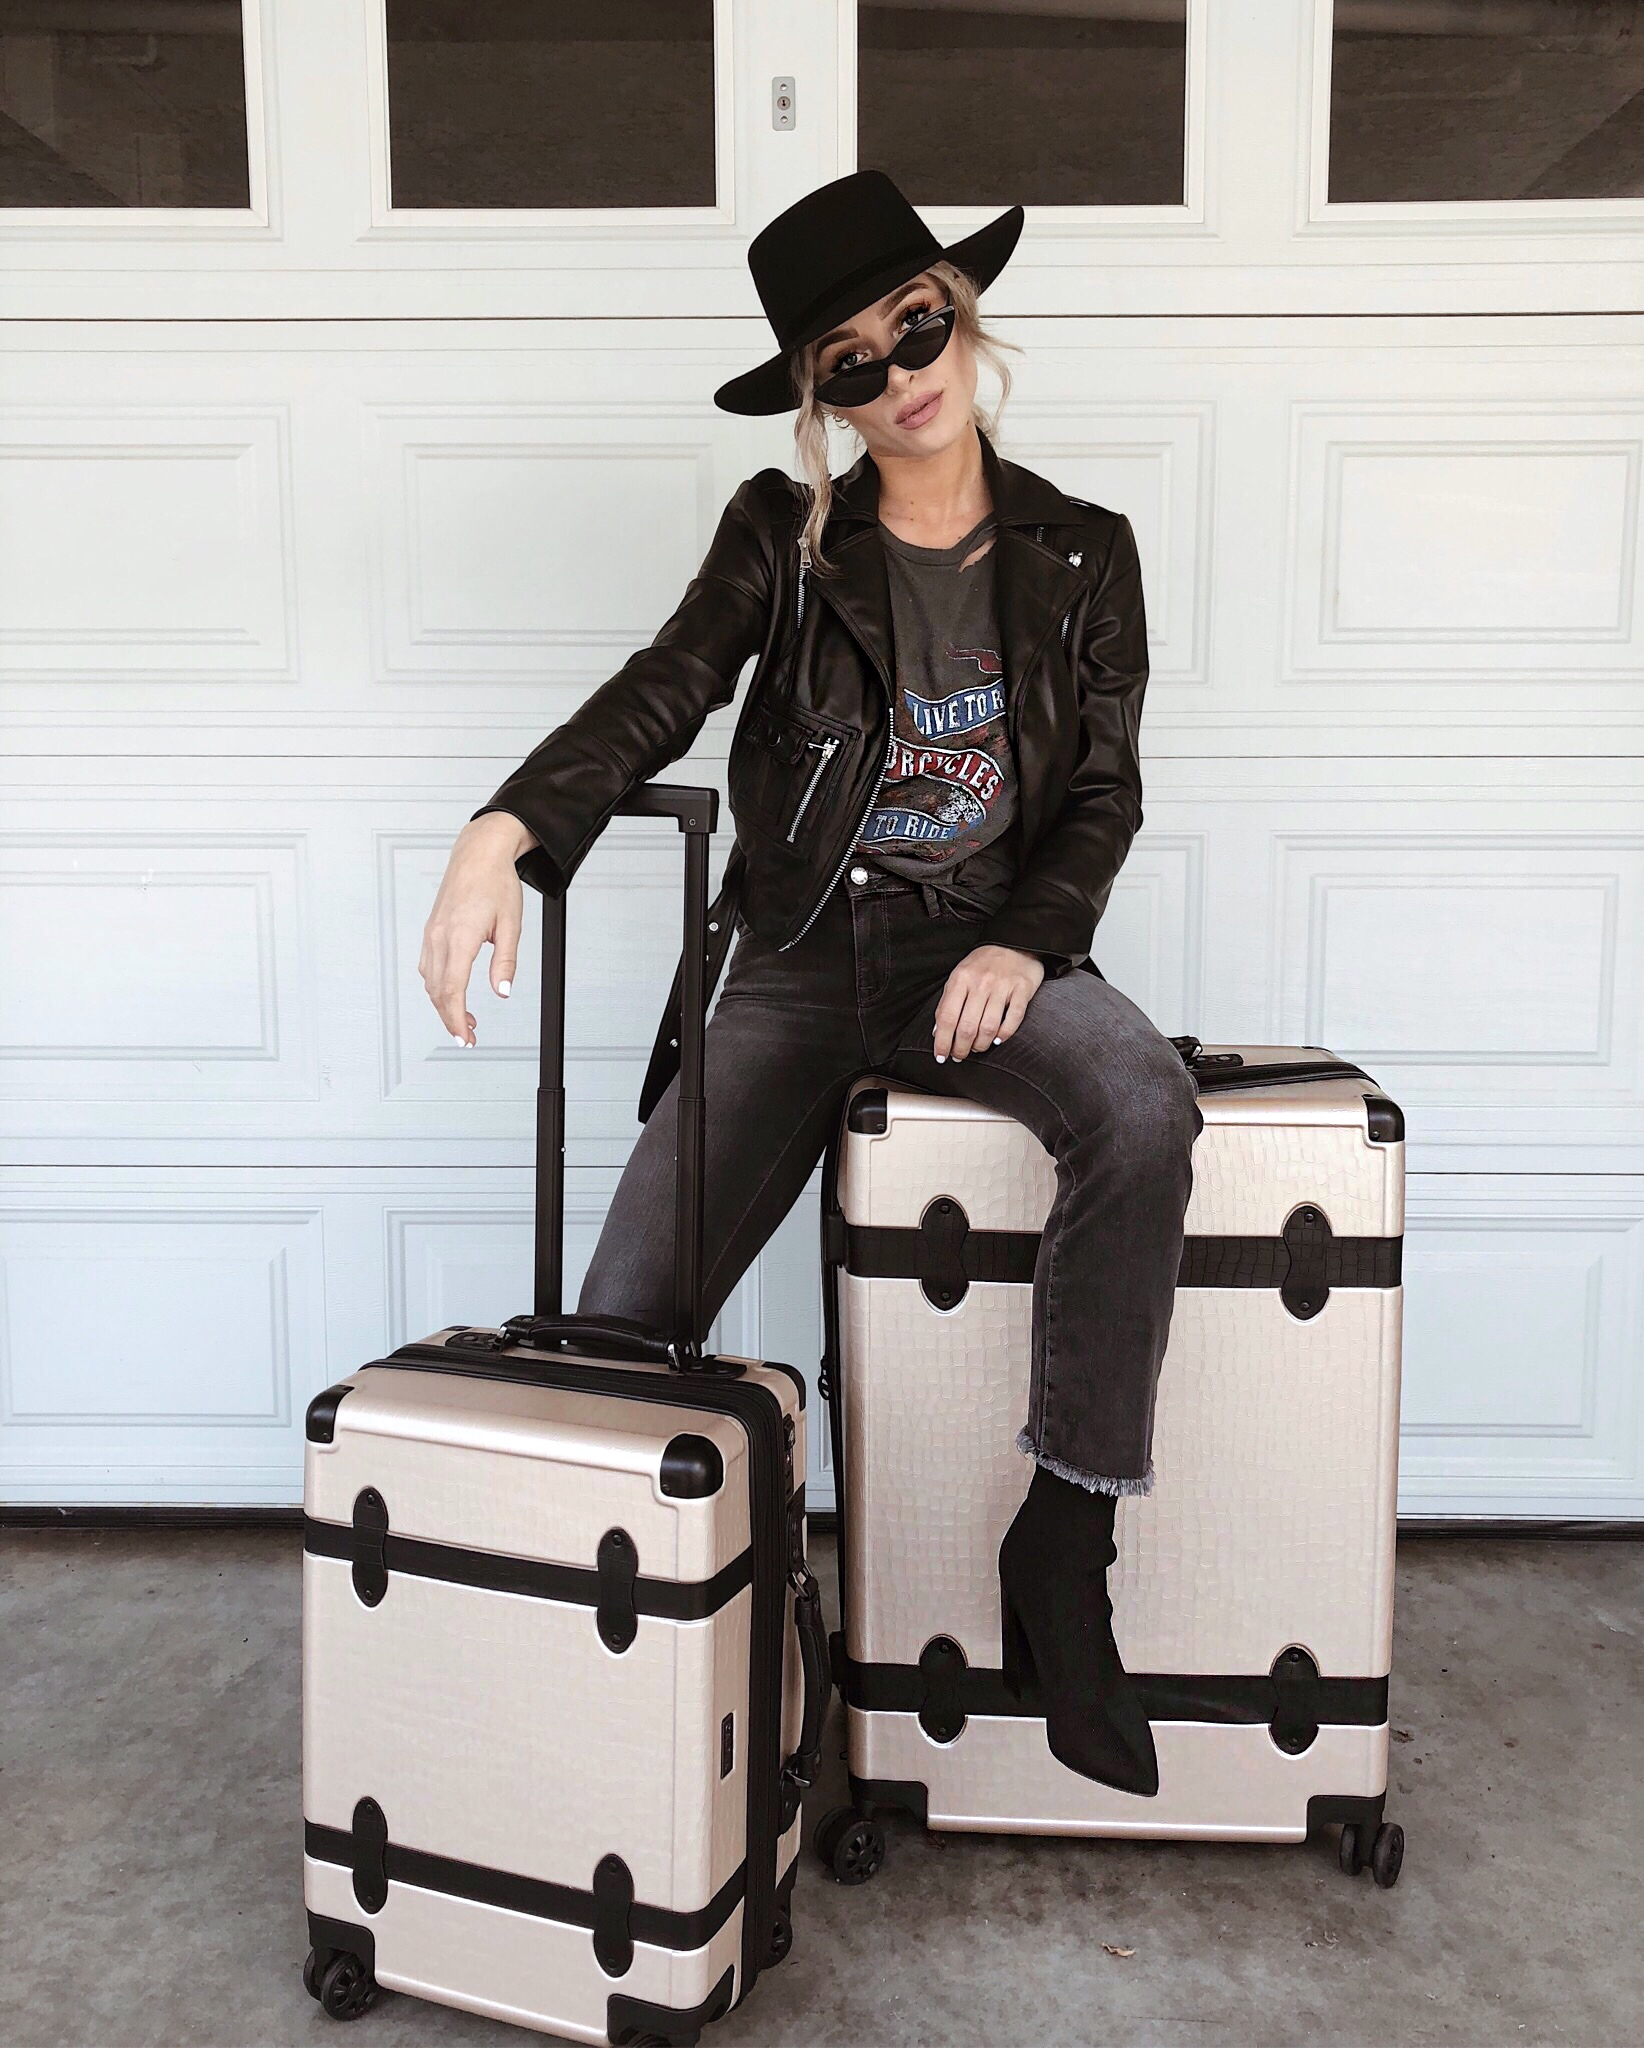 @thestyleseed sitting on CALPAK's Large Trnk luggage in nude, along with CALPAK's carry-on Trnk luggage.